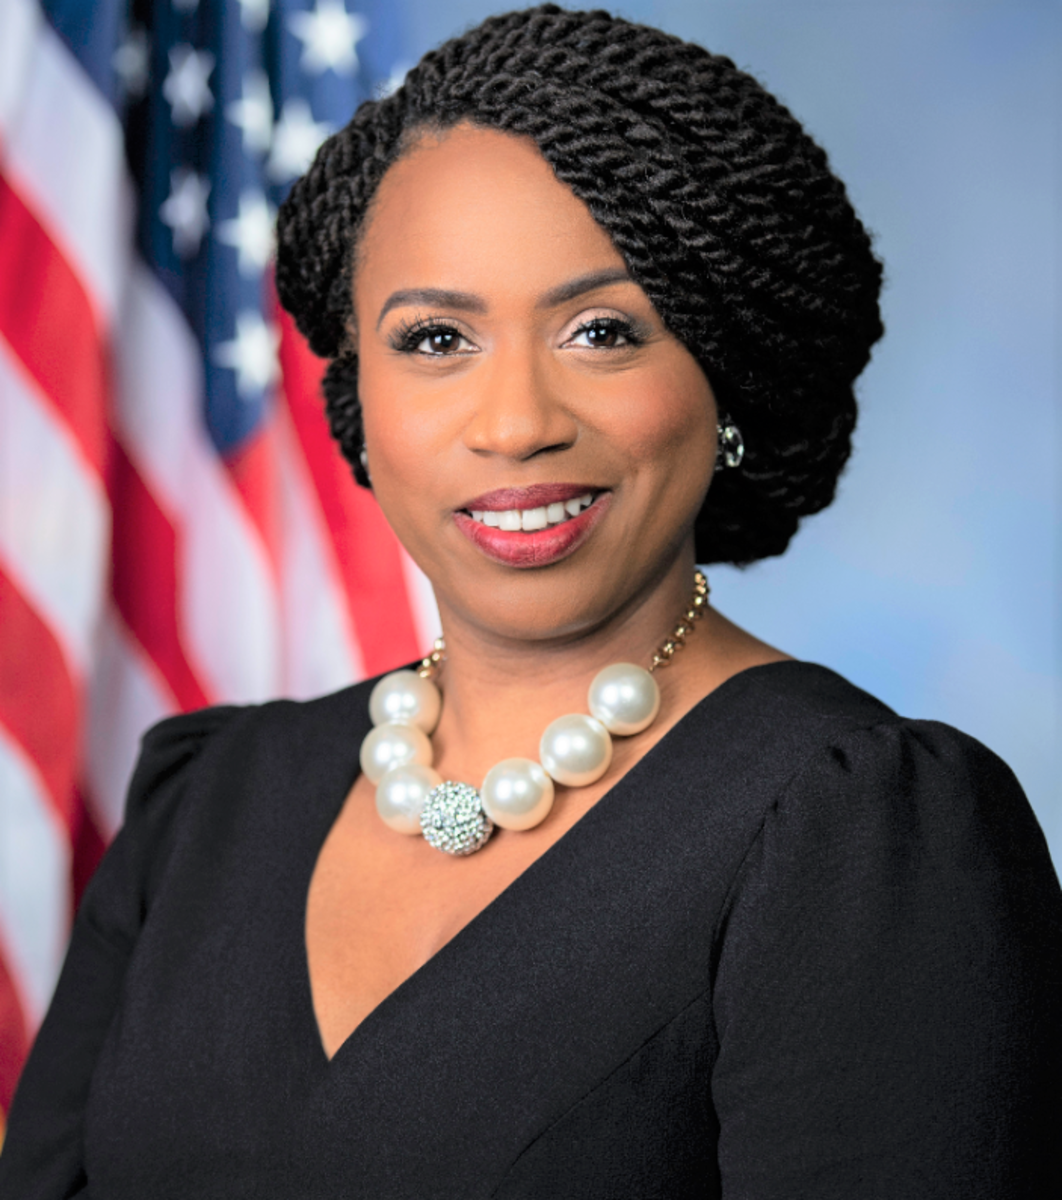 Congresswoman Ayanna Pressley was elected to represent Massachusetts' 7th Congressional District in the U.S.